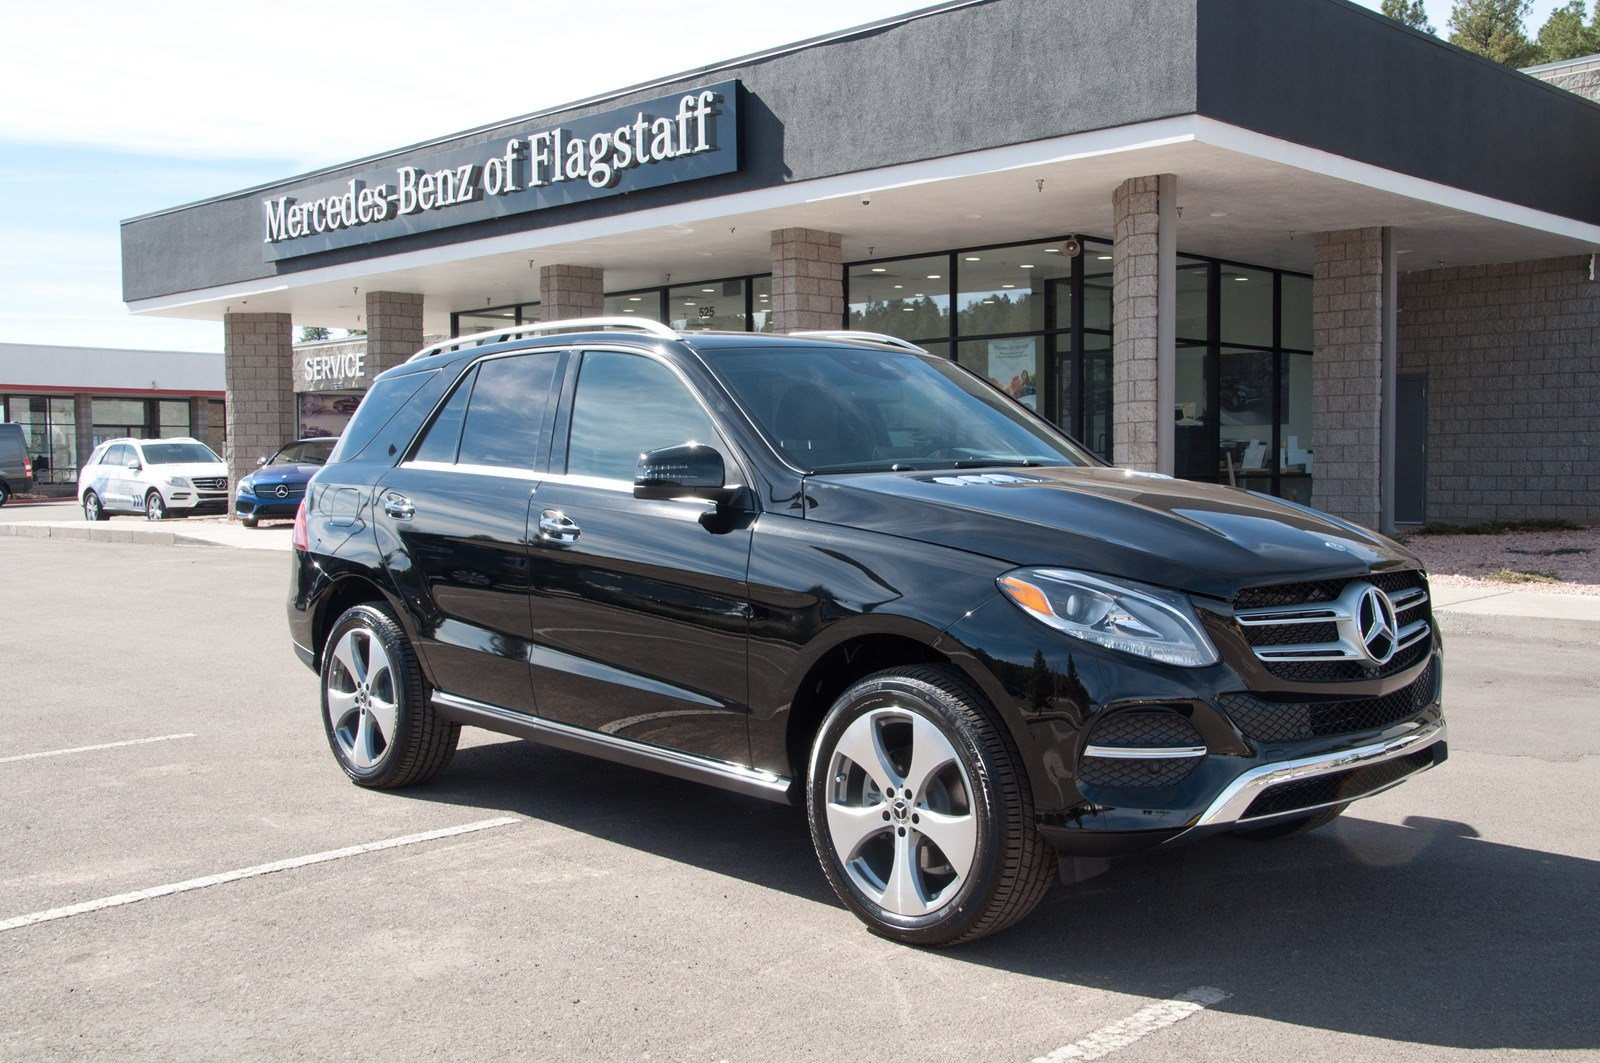 New 2017 mercedes benz gle gle 350 suv in flagstaff for 2017 mercedes benz gle